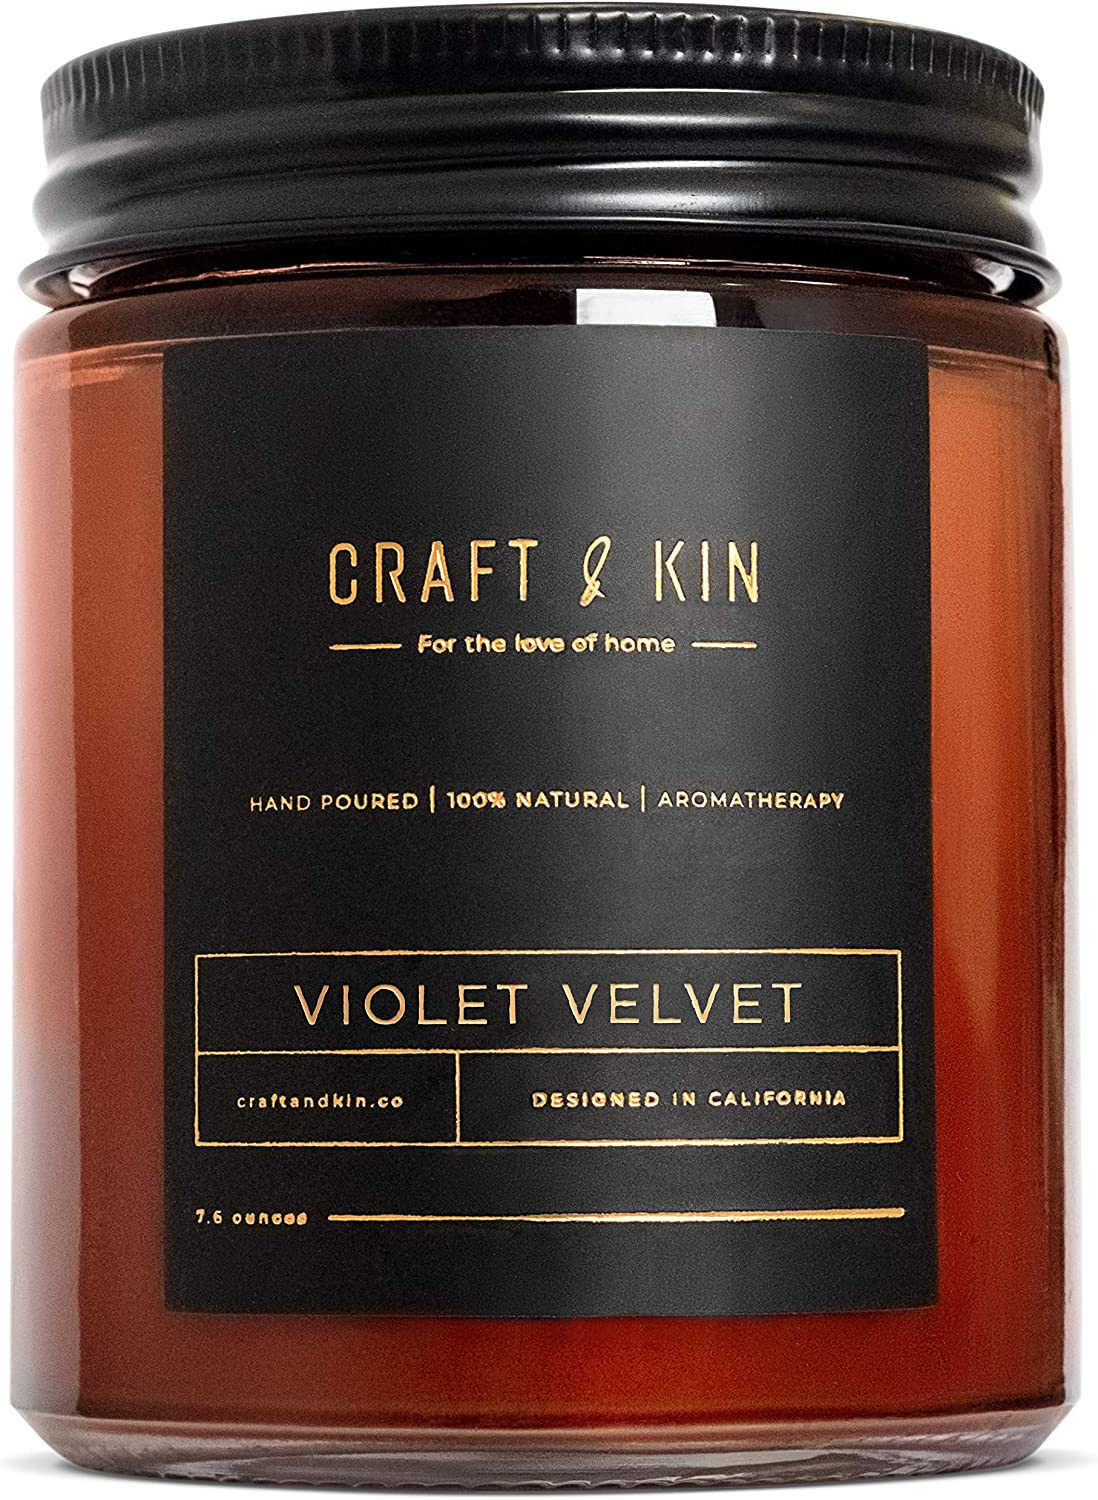 Craft & Kin Soy Candles, Premium 'Violet Velvet' Scented Candles for Men & Women | All-Natural Soy Wax Rustic Home Decor Rustic Scented Candles | Non-Toxic, Ultra Clean Burn Amber Jar Candles